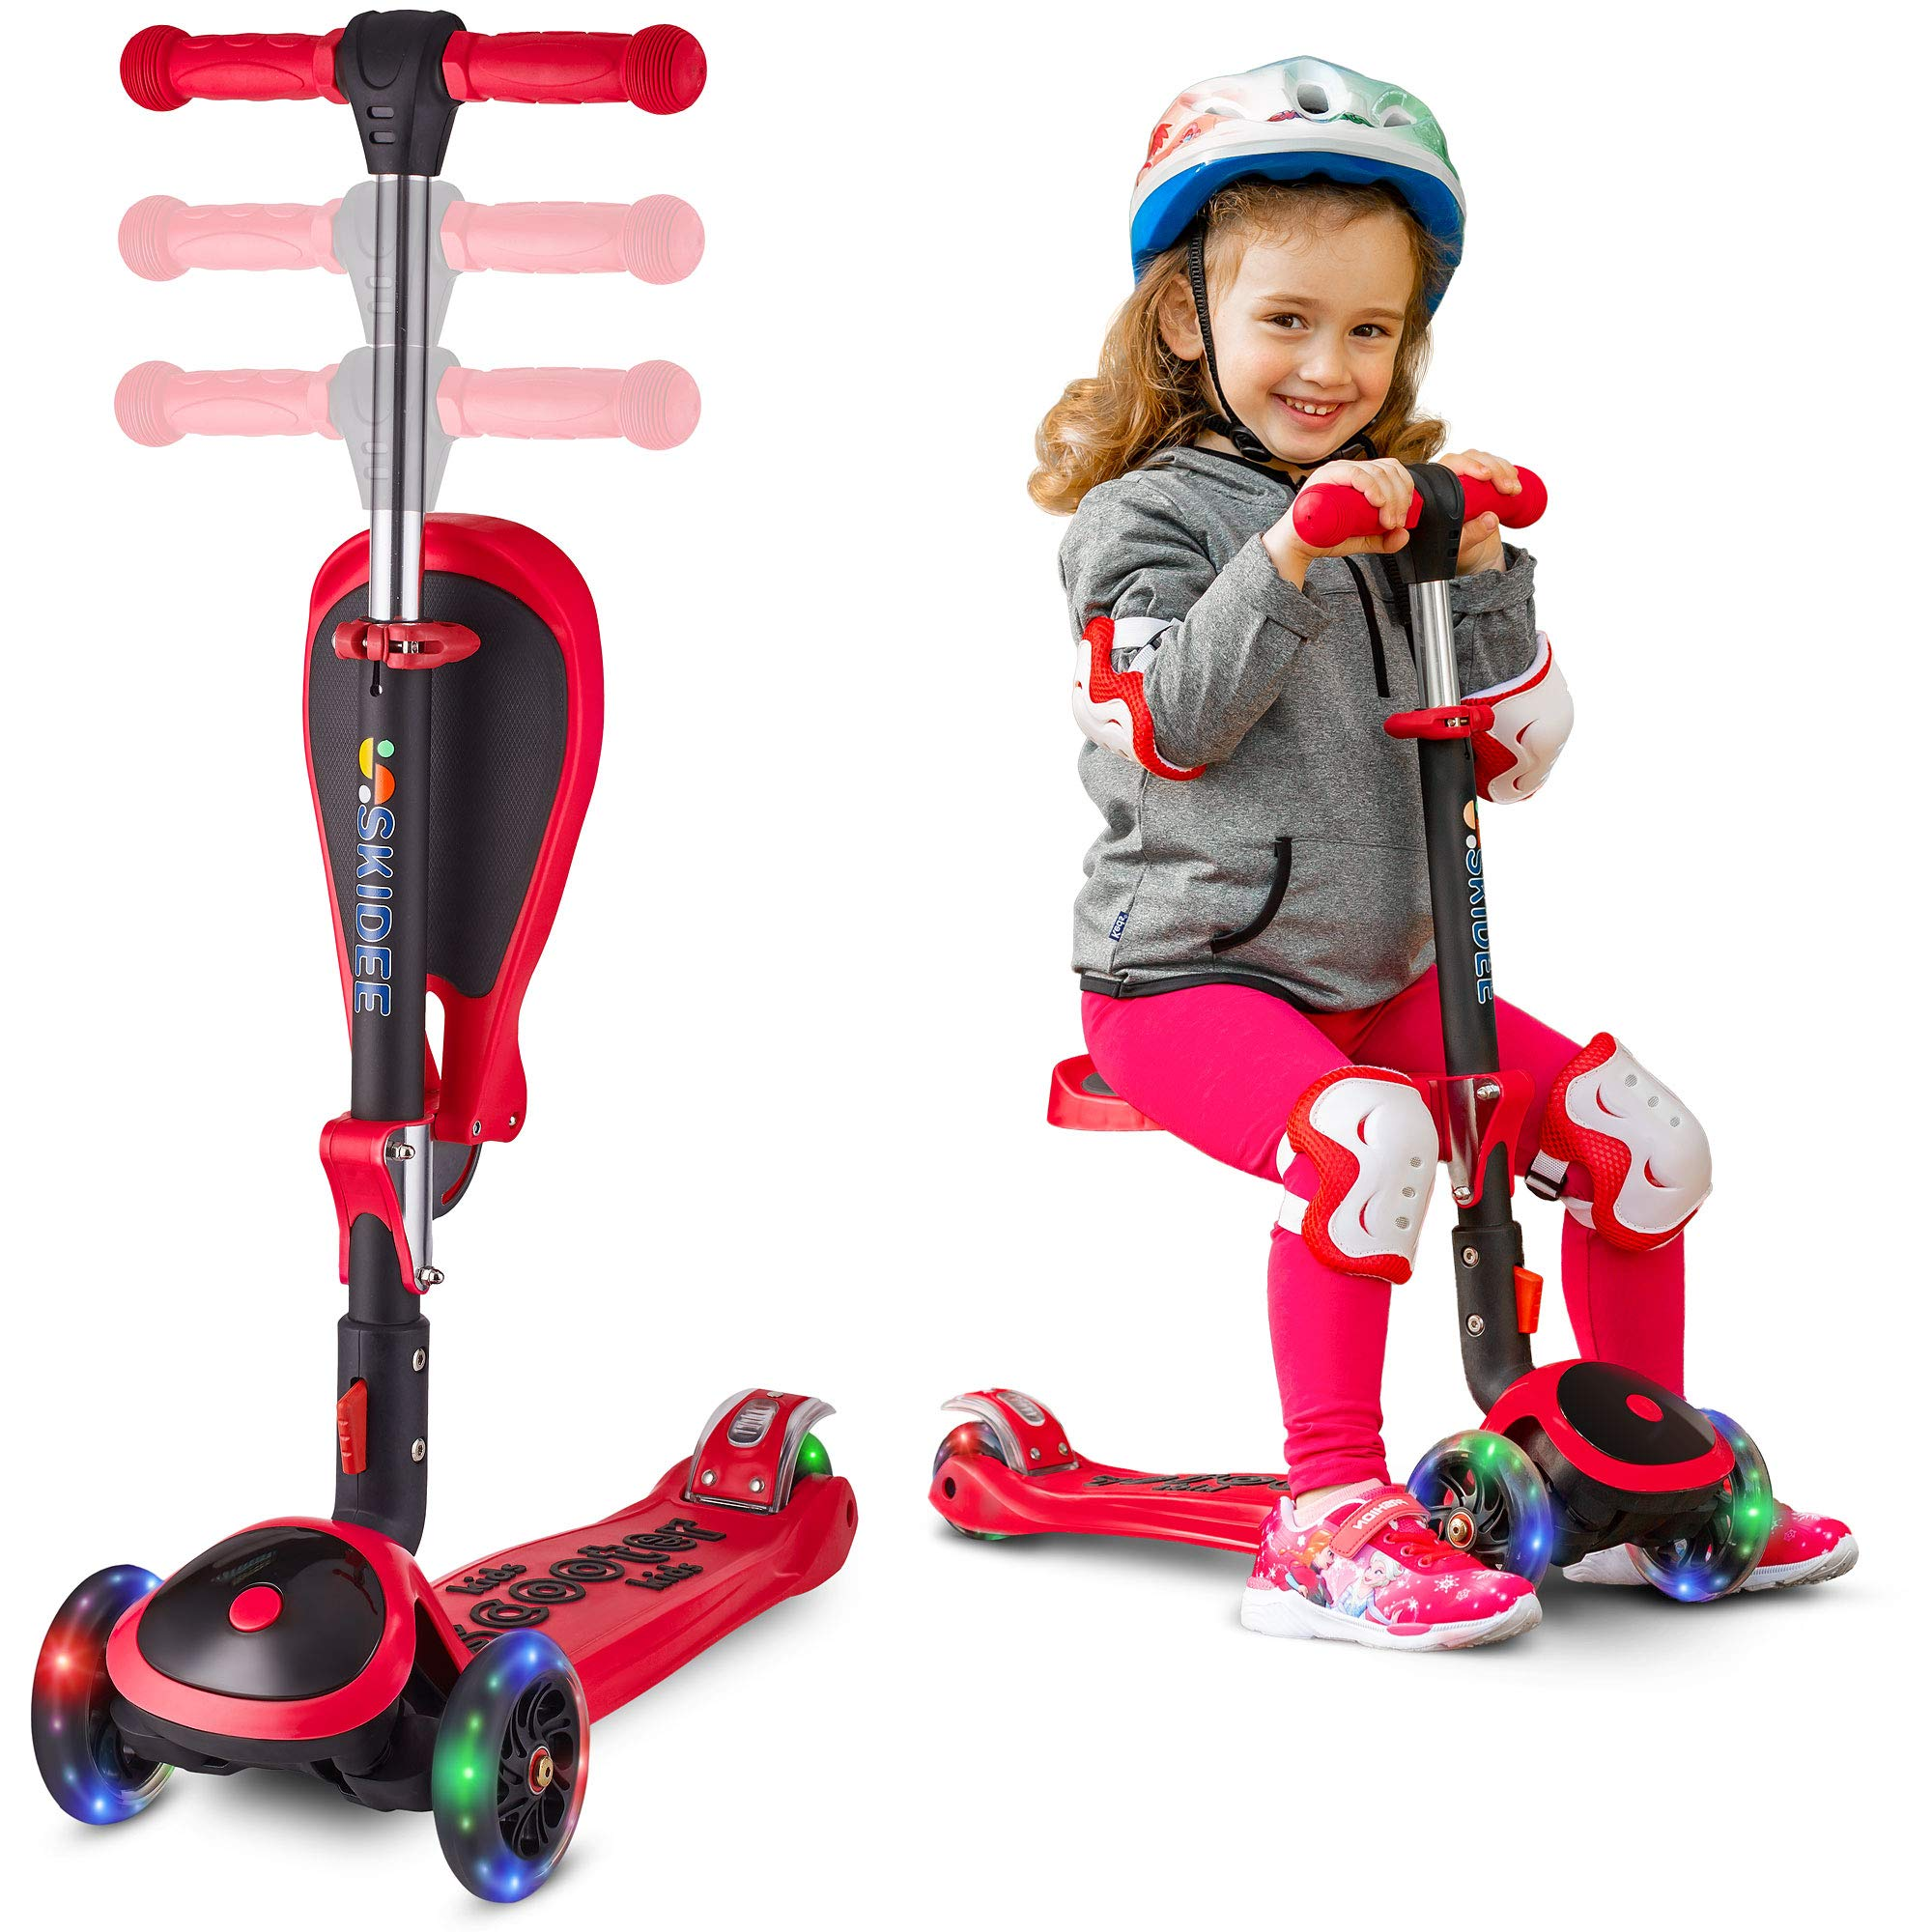 SKIDEE Scooter for Kids with Folding Seat - 2-in-1 Adjustable 3 Wheel Kick Scooter for Toddlers Girls & Boys - Fun Outdoor Toys for Kids Fitness, Outside Games, Kid Activities - Y200 (Red, Scooter) by S SKIDEE